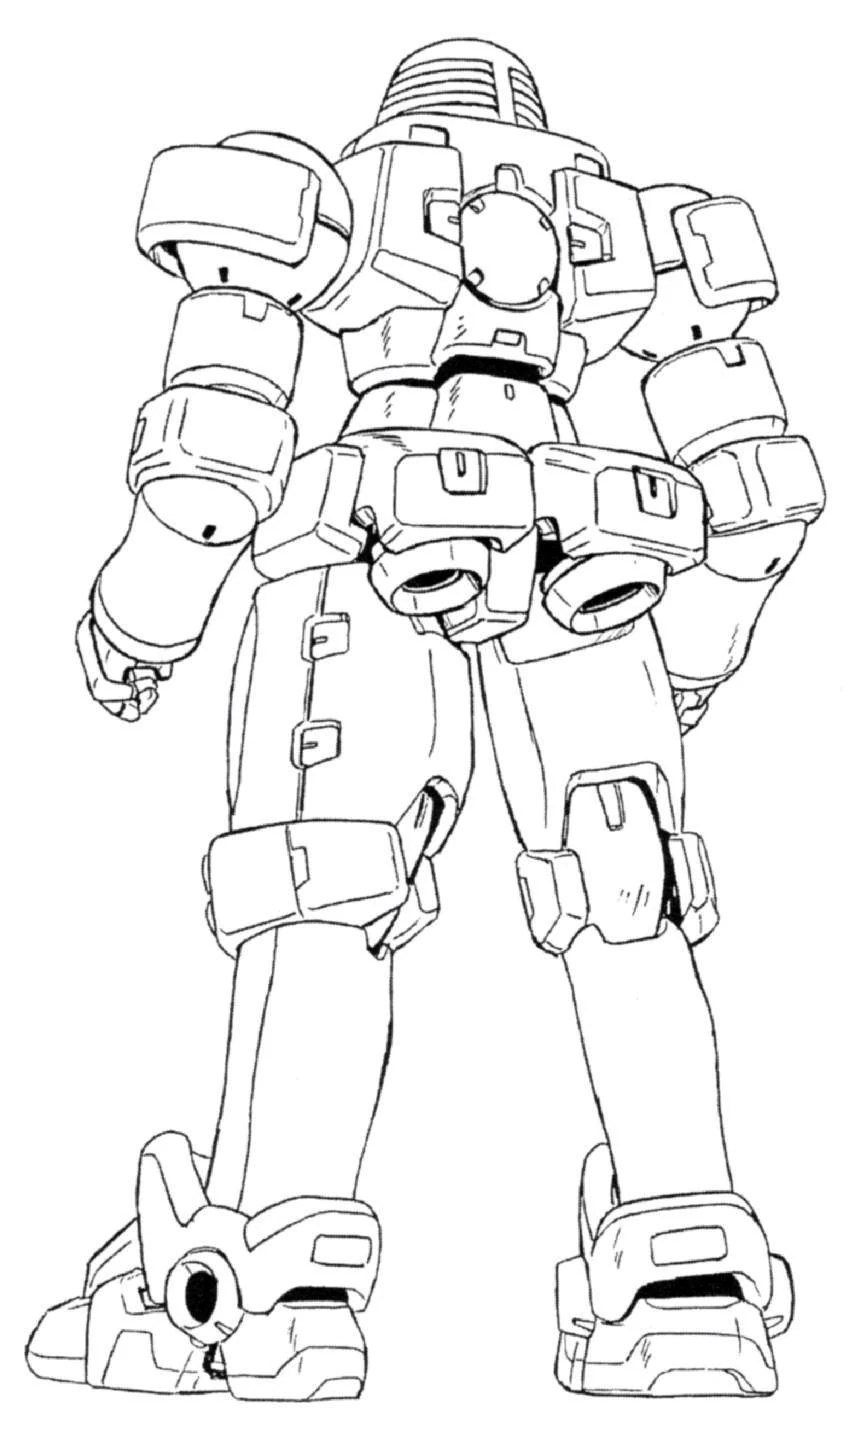 OZ-06MS Leo Back View Lineart